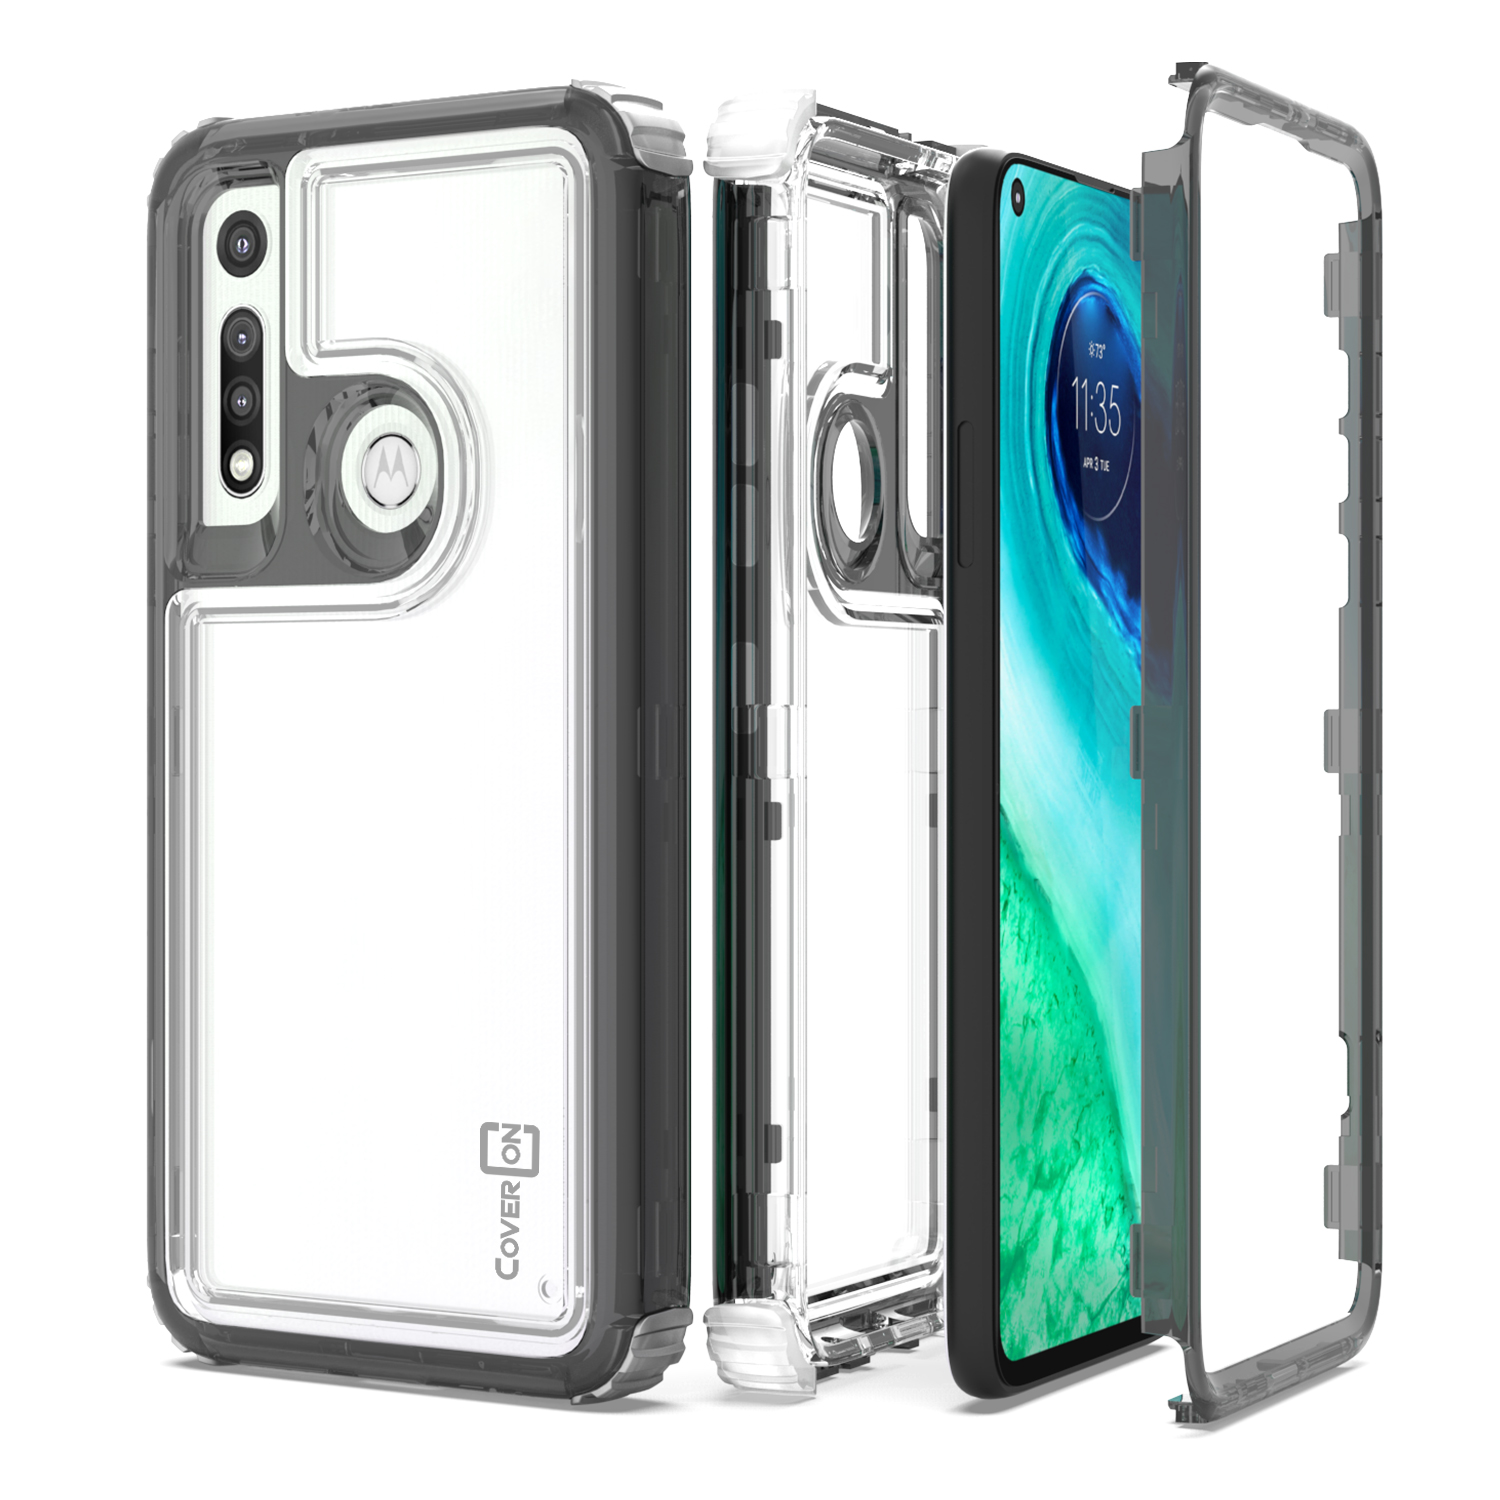 low priced acd9a d607b Details about Hybrid Slim Fit Hard Back Cover Case For Sony Xperia XZ1  Compact Black / Clear